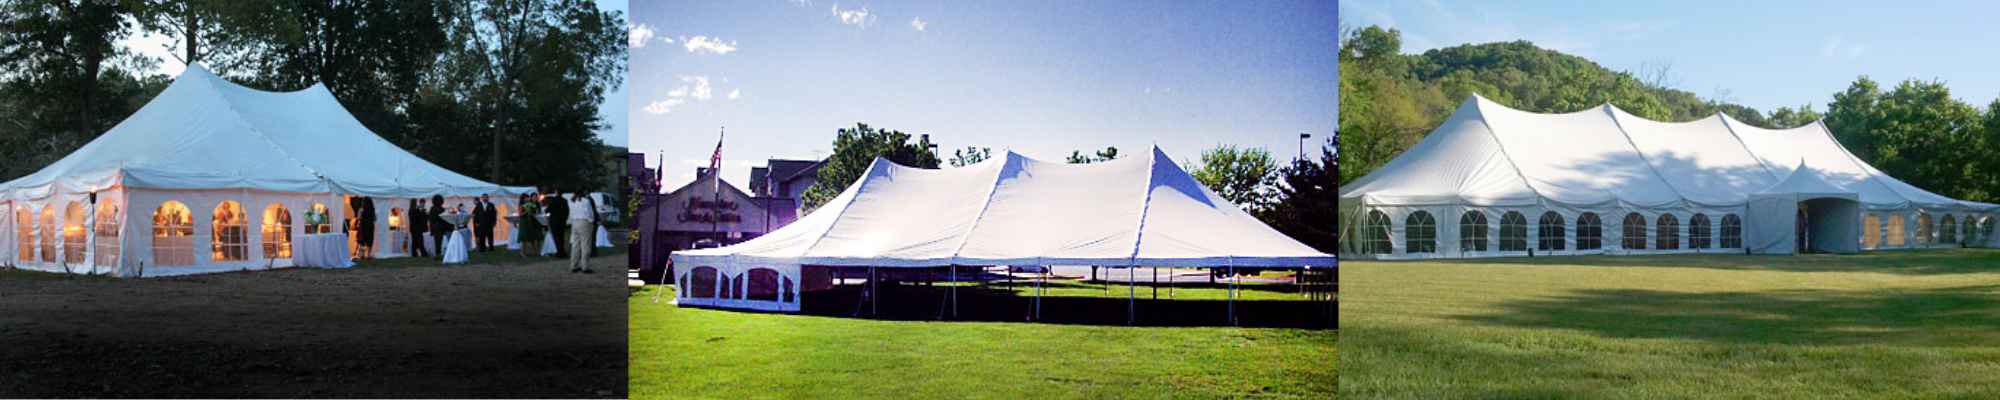 white event tent for special occasions